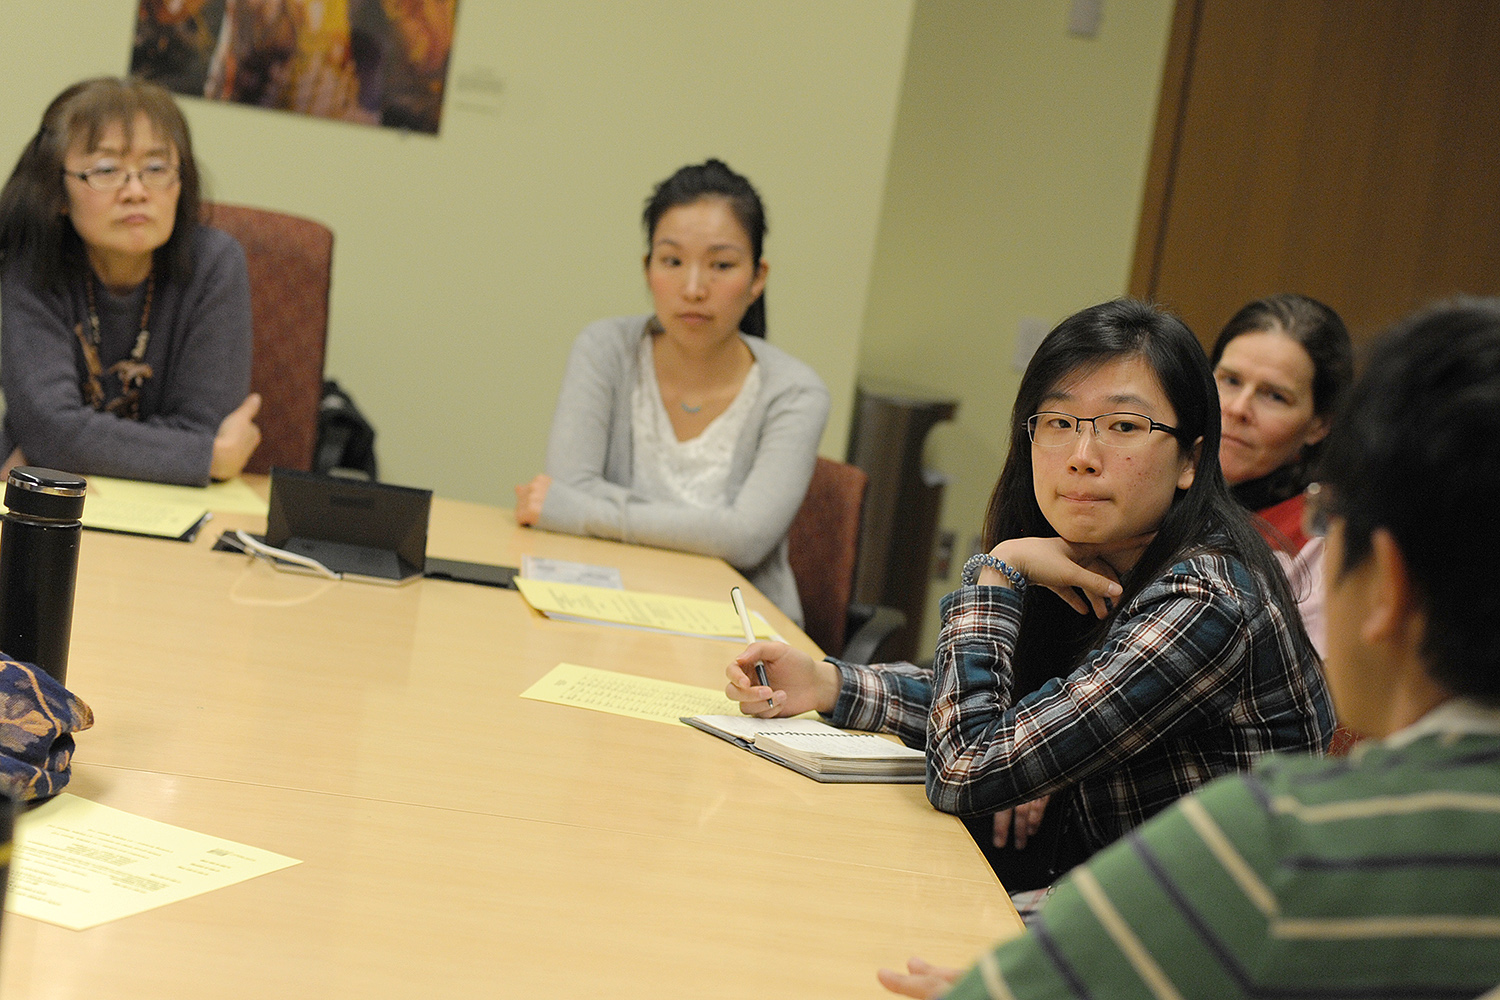 Following the faculty talks, students participated in group breakout sessions led by student facilitators.